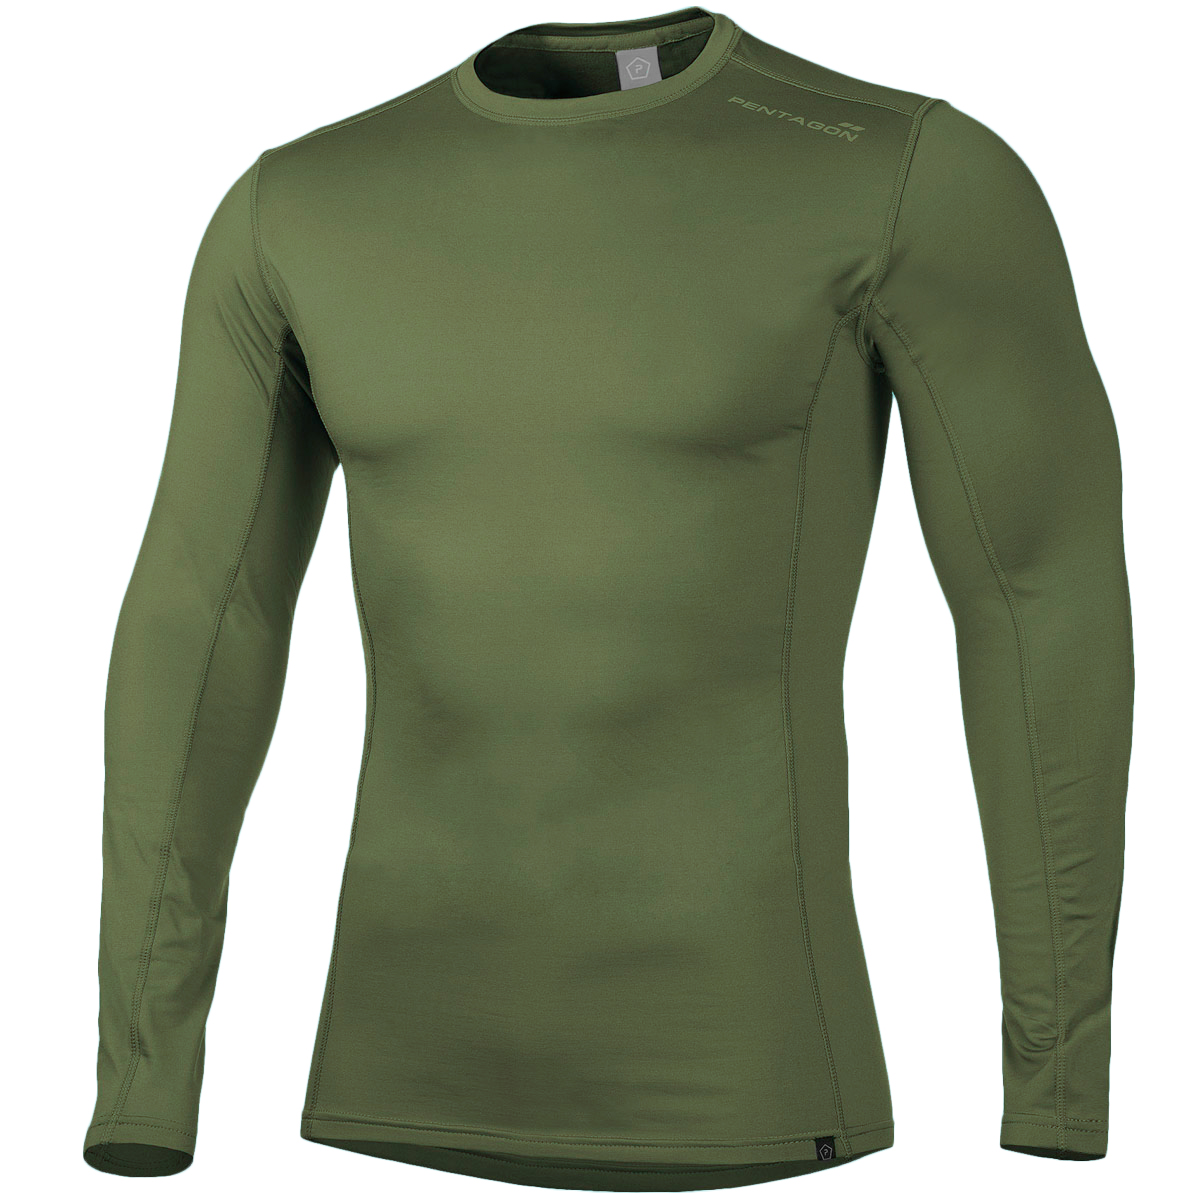 PENTAGON PINDOS 2.0 OLIVE GREEN HYPER ACTIVE THERMAL SWEATER BASE LAYER TOP